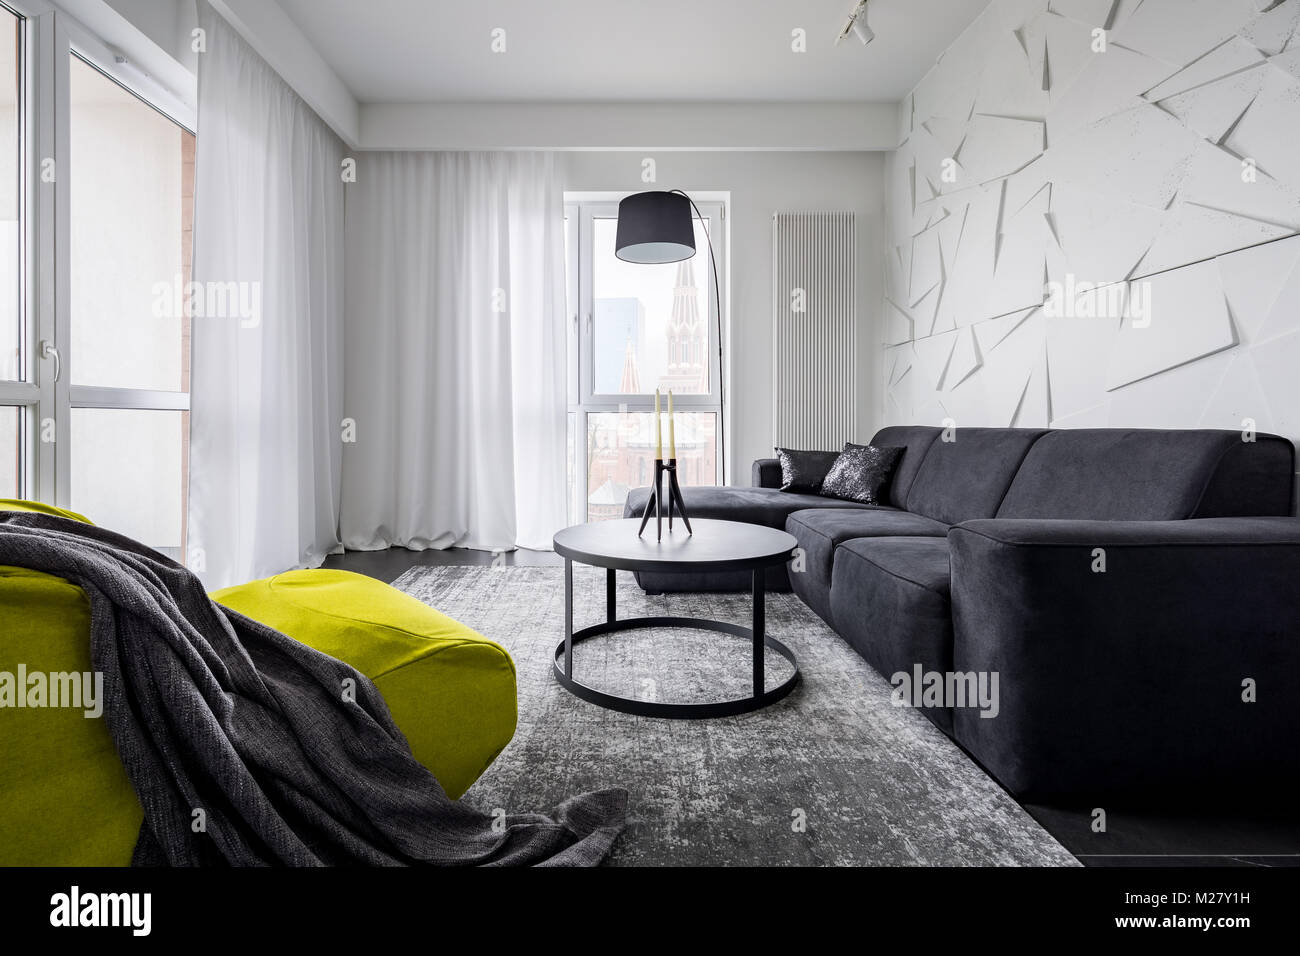 Swell Green Sack Chair Black Sofa And Decorative 3D Wall In Beatyapartments Chair Design Images Beatyapartmentscom